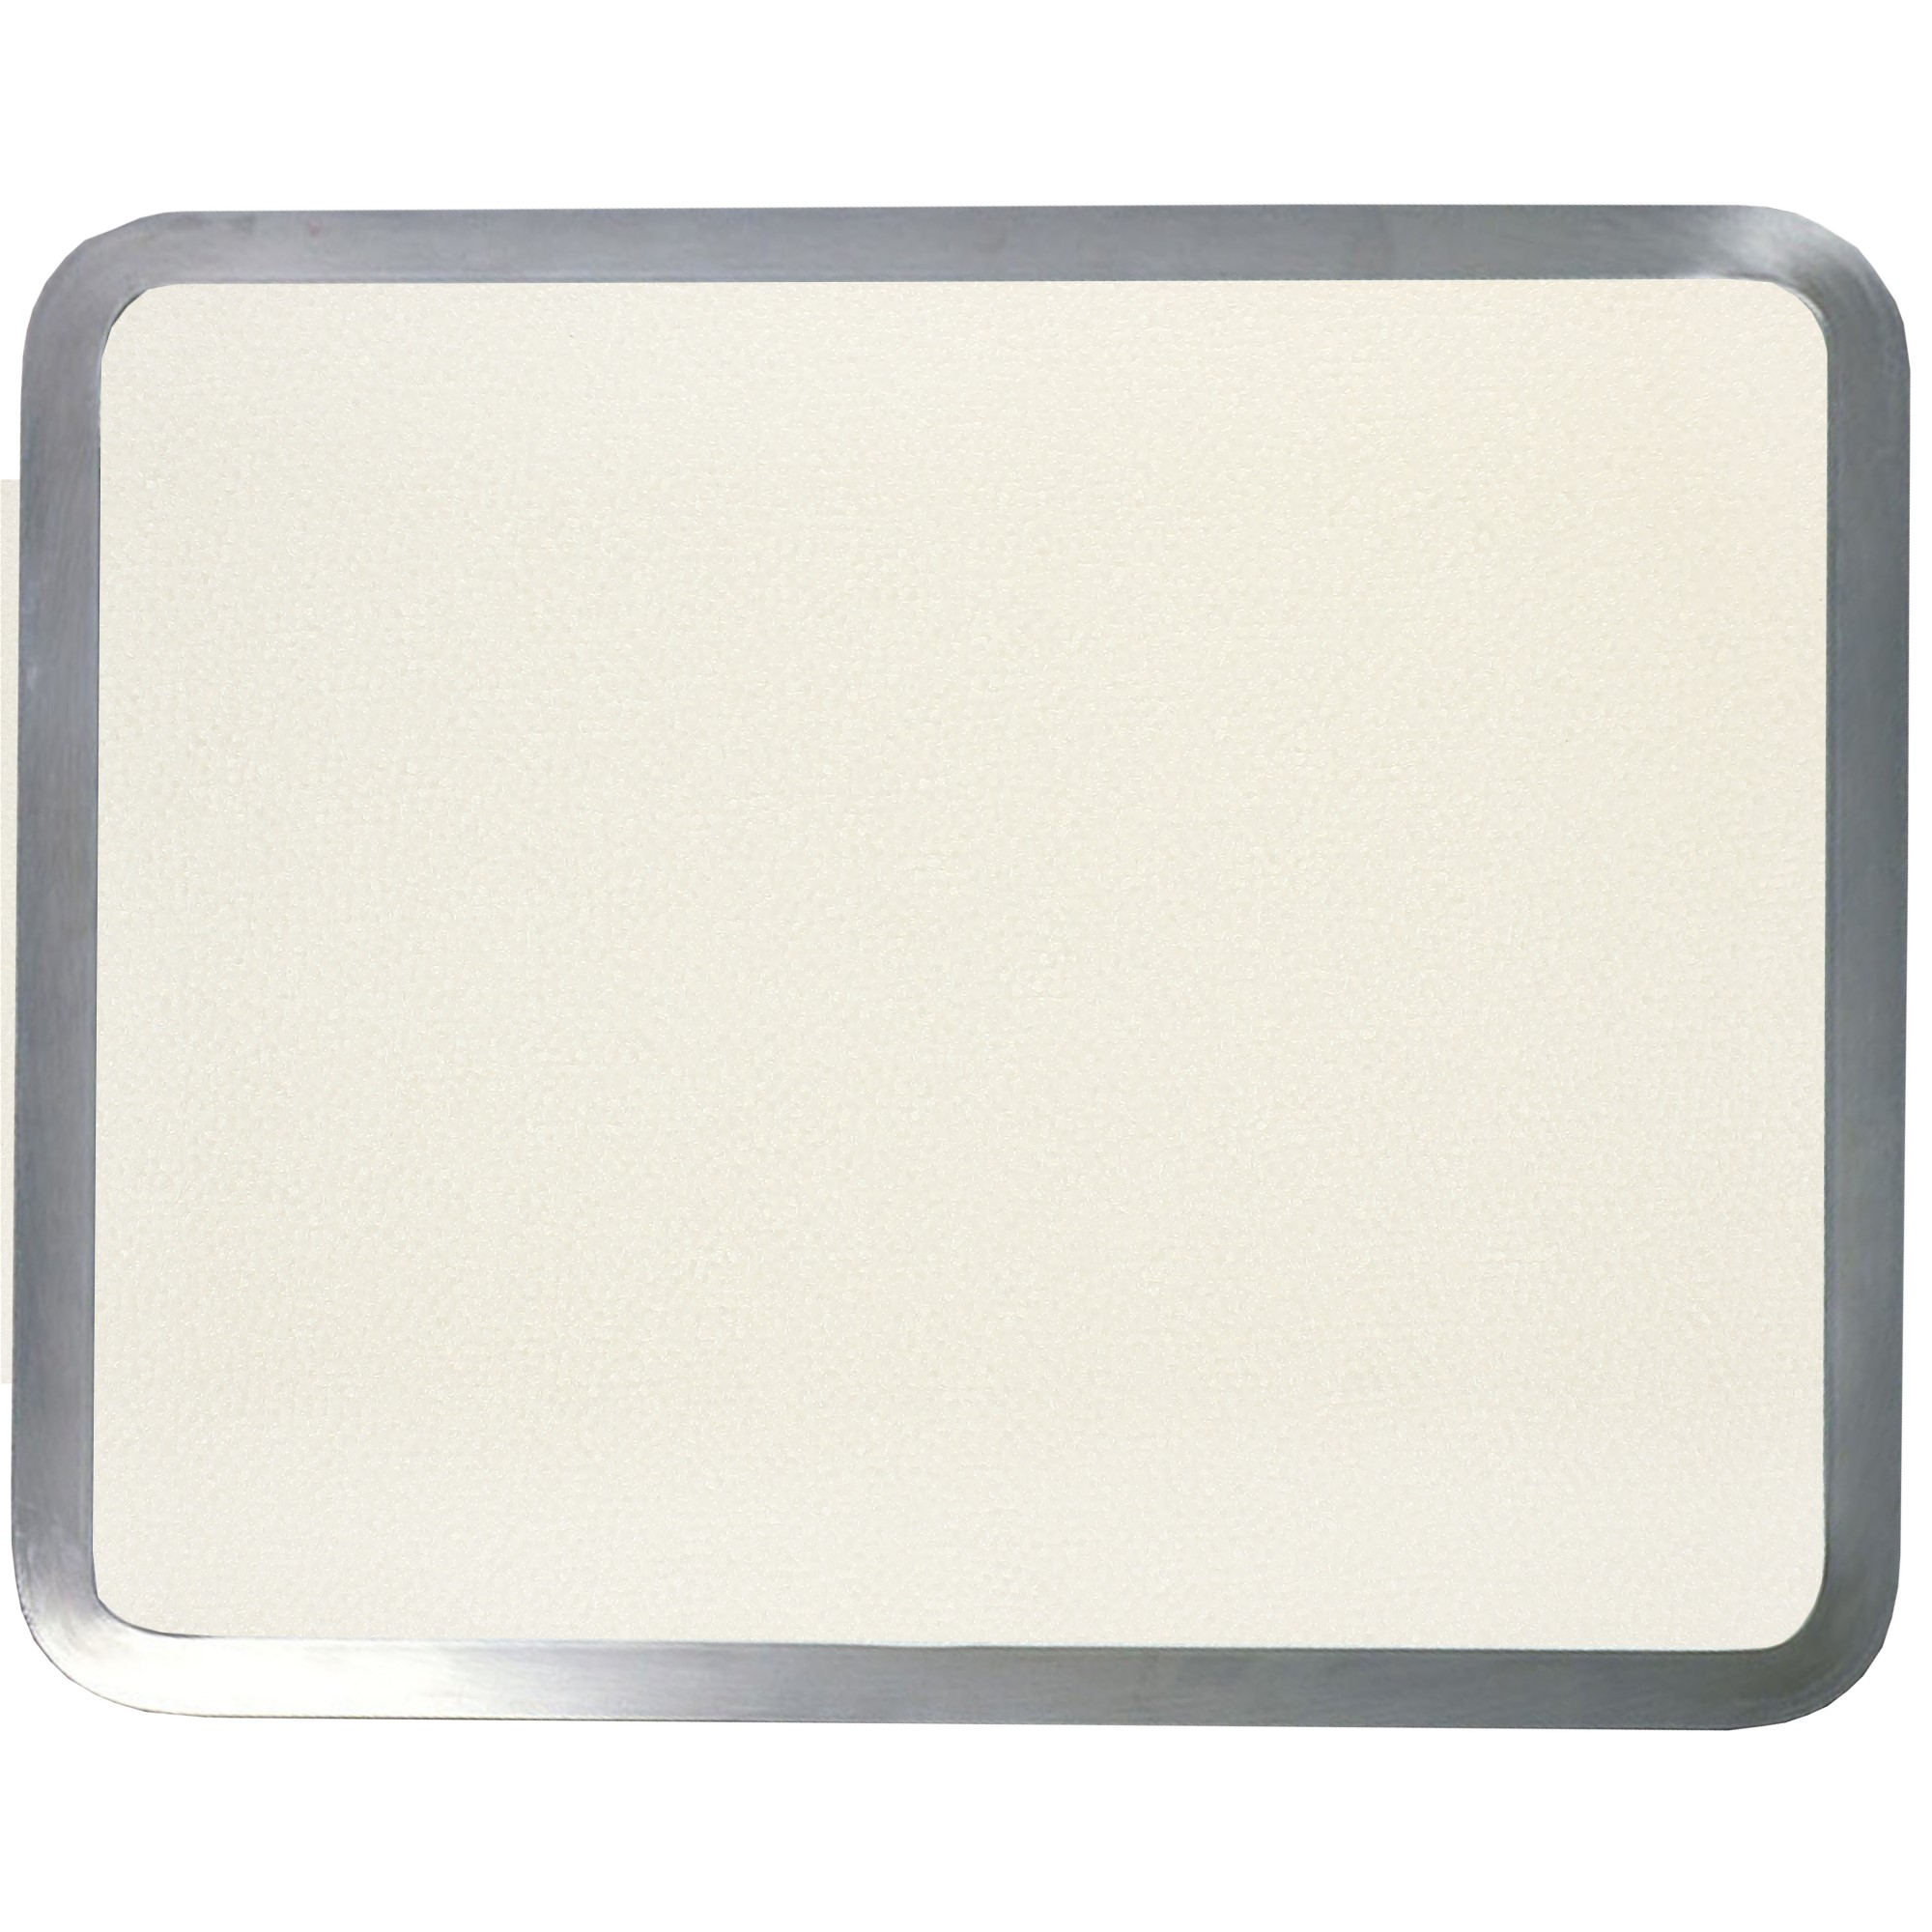 Vance 12 X 15 Inch Almond Built In Surface Saver Tempered Glass Cutting Board 71215al Walmart Com Walmart Com